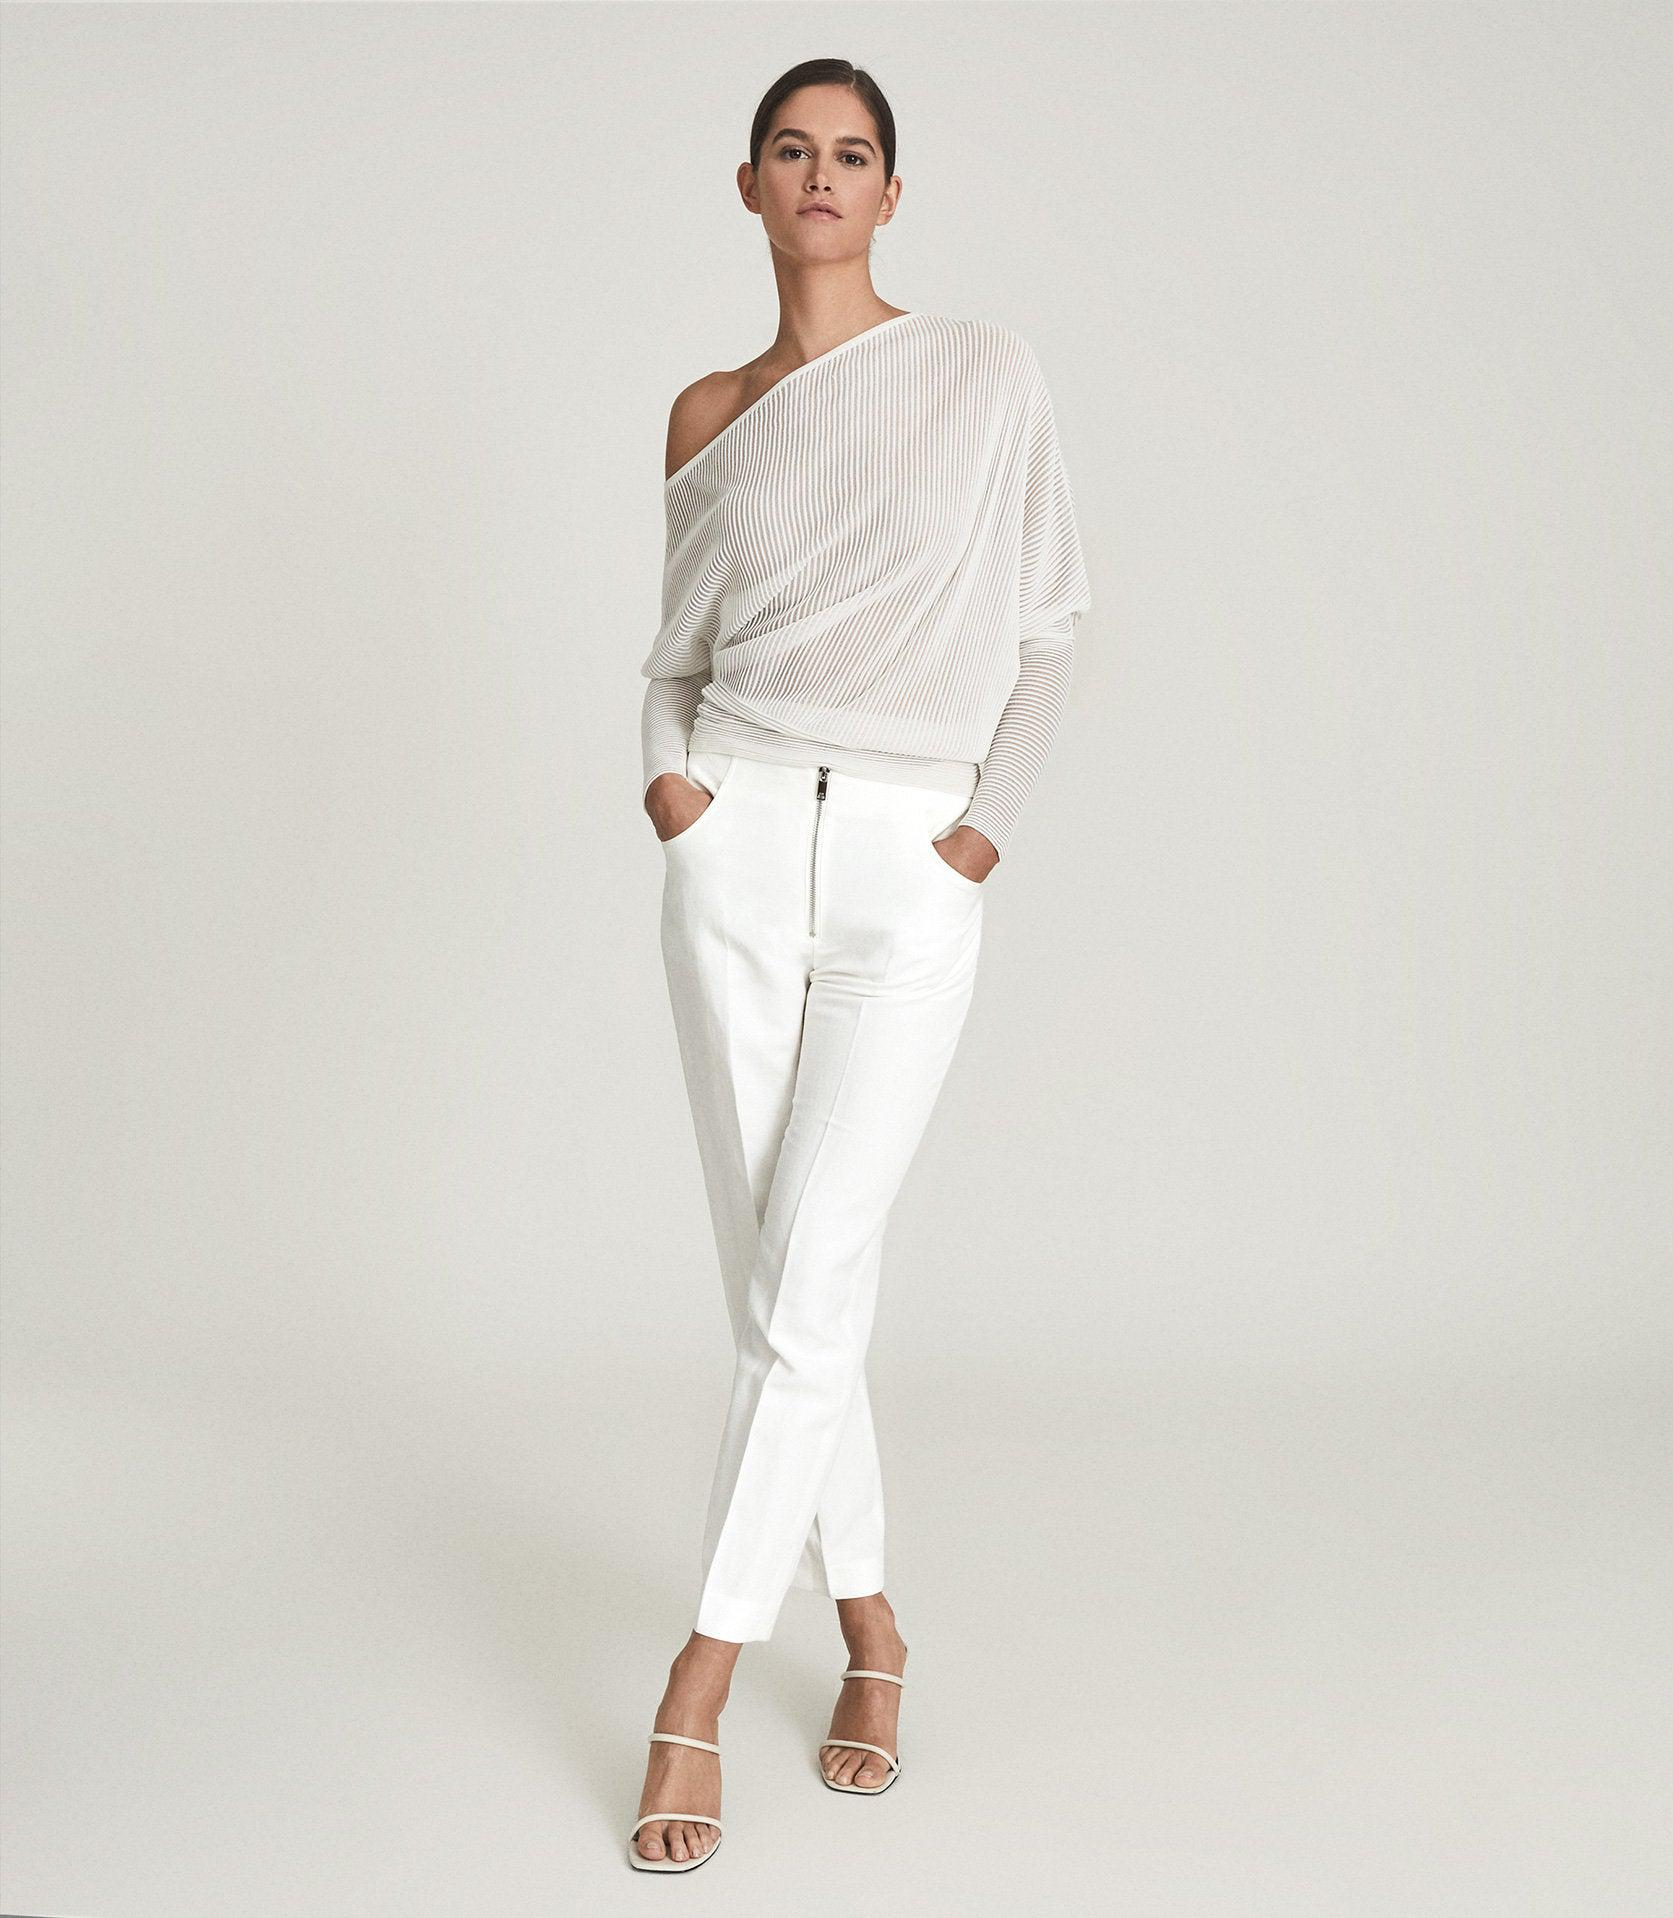 CALLY - LINEN BLEND TROUSERS WITH EXPOSED ZIP